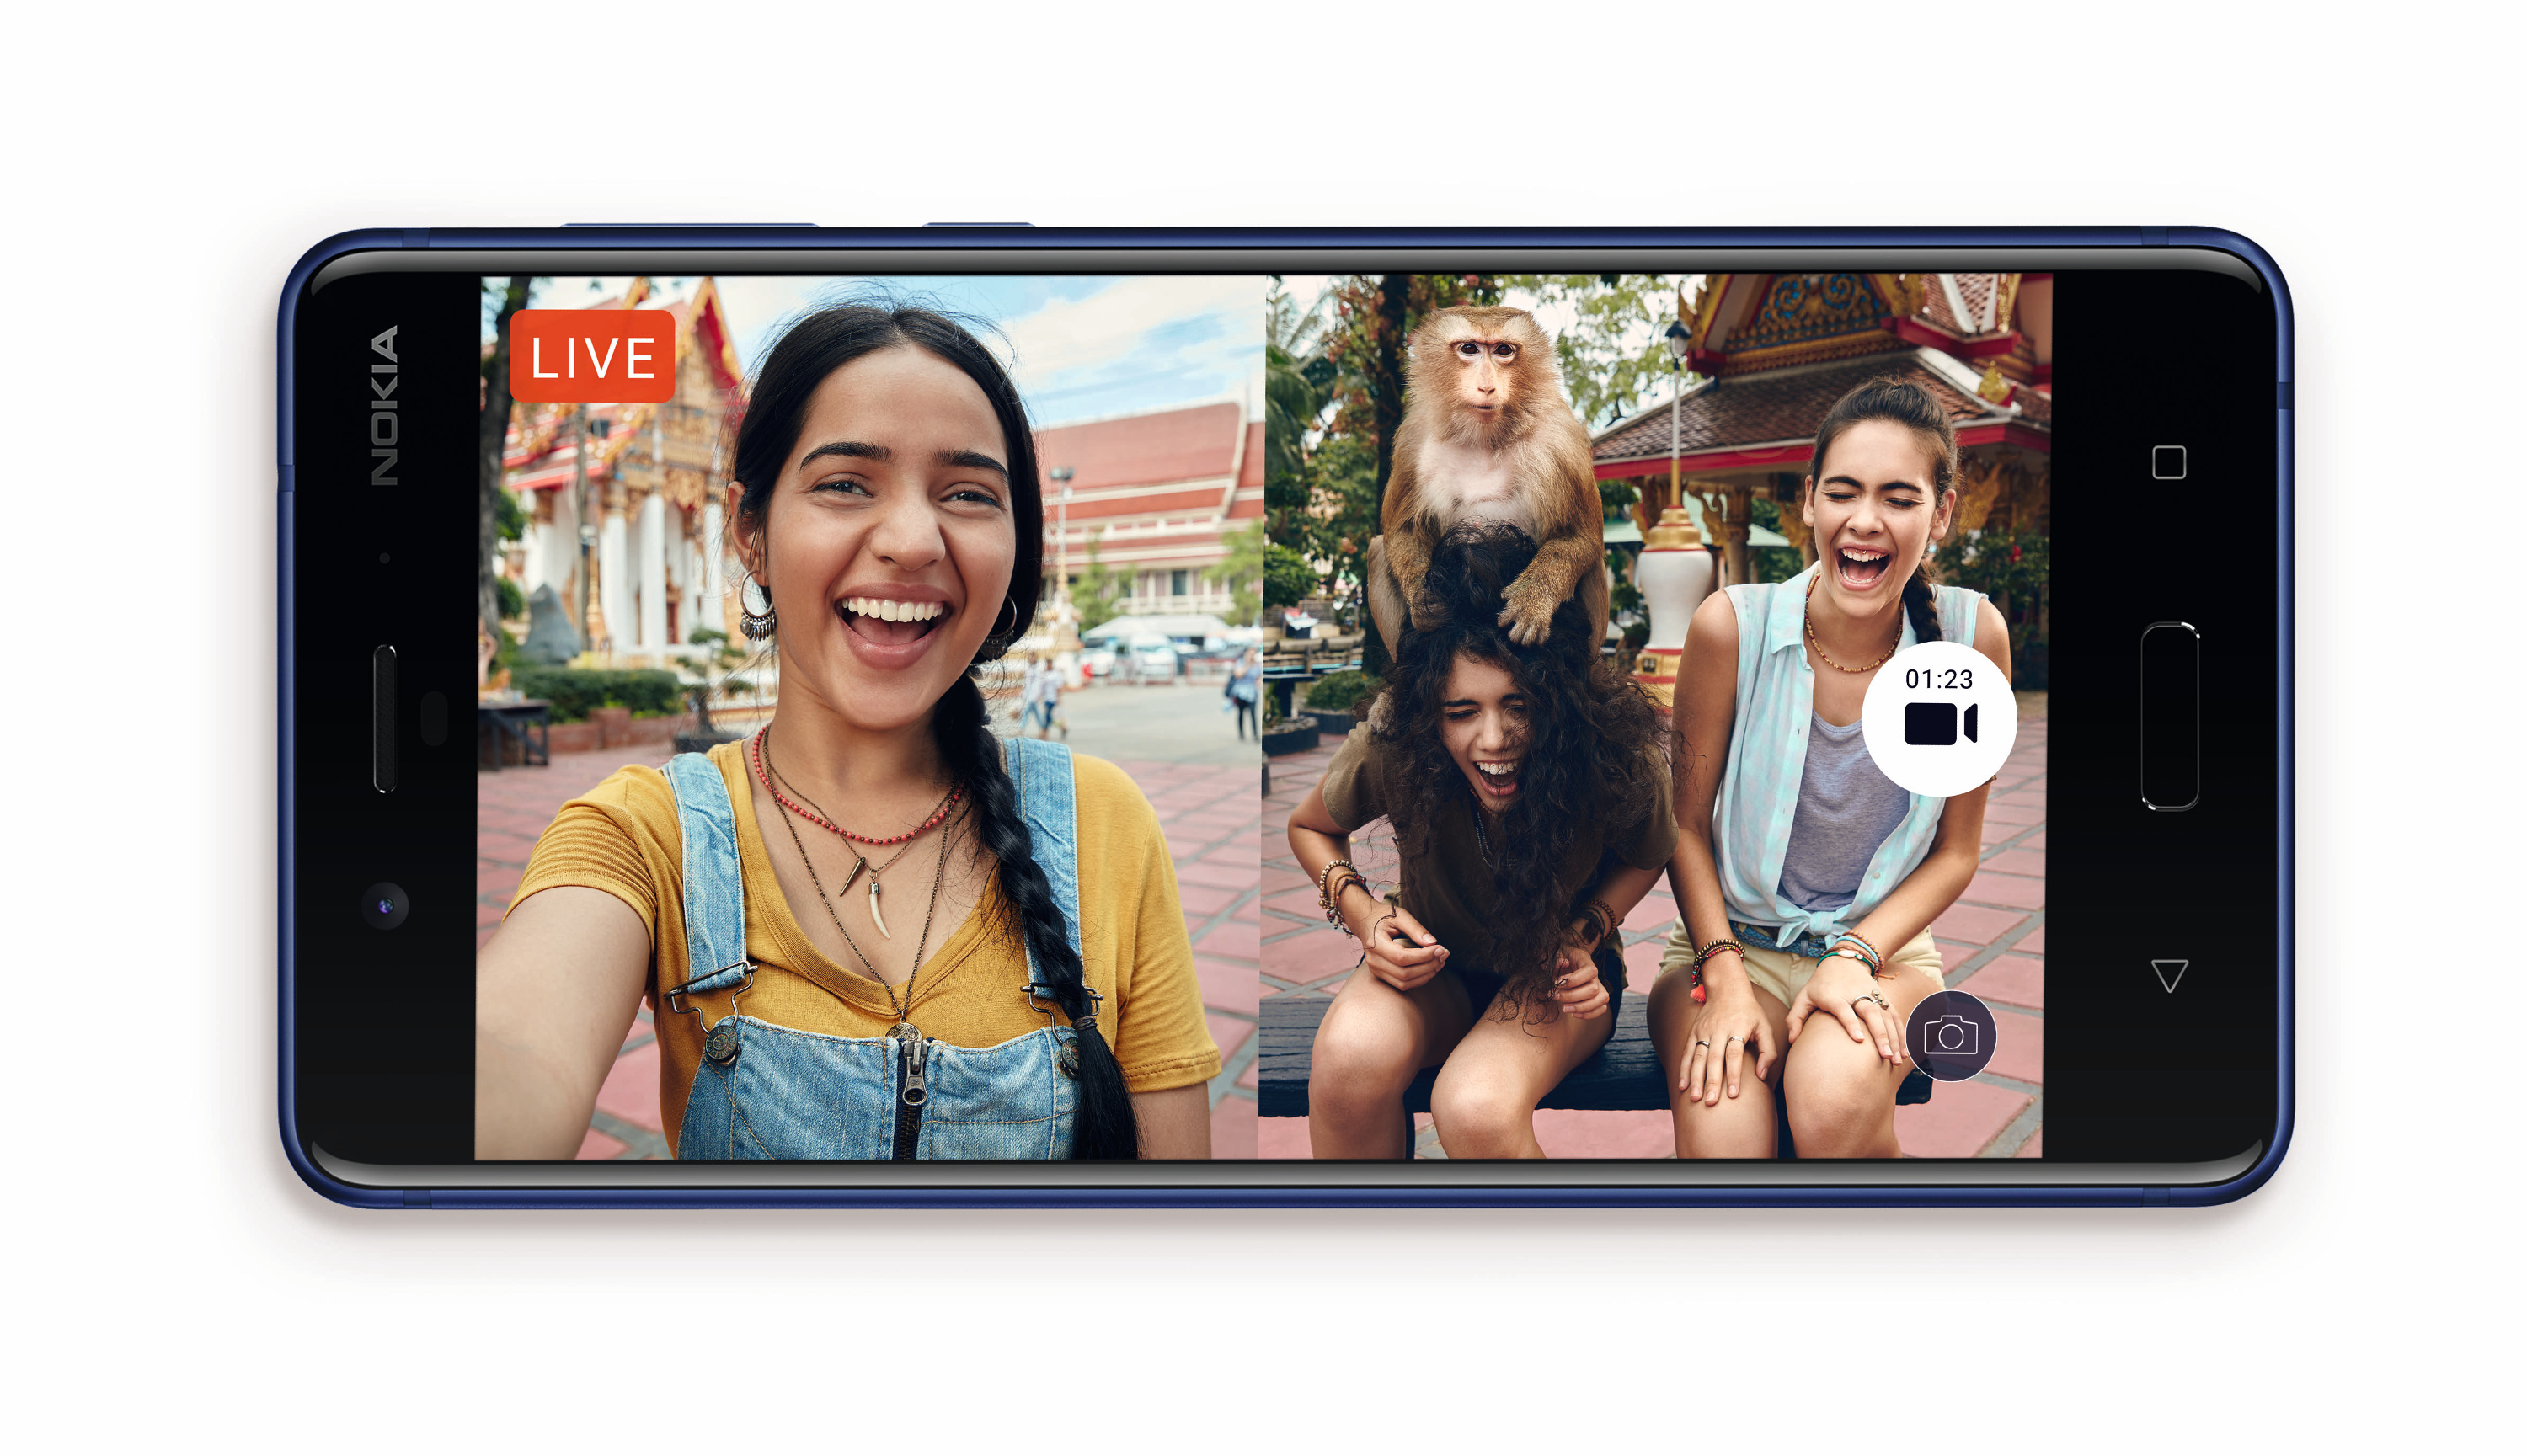 The Nokia 8 uses two cameras, splitting the screen for photos and videos.